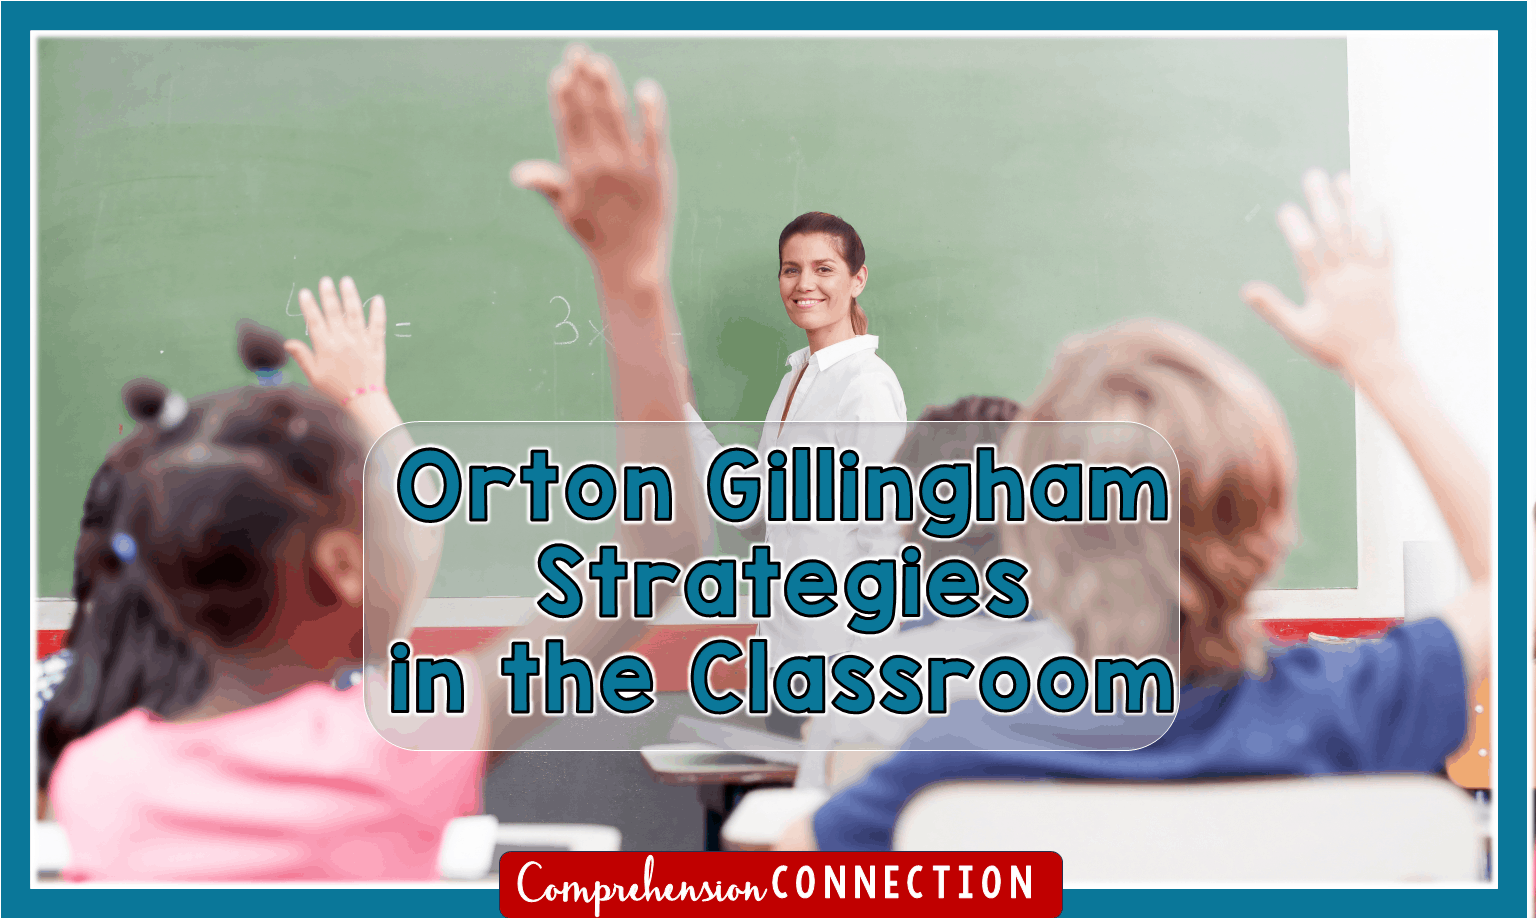 New learning is cemented in the brain when we use a visual, auditory and kinesthetic approach simultaneously. In this post, Orton Gillingham strategies for classroom teachers are explained.